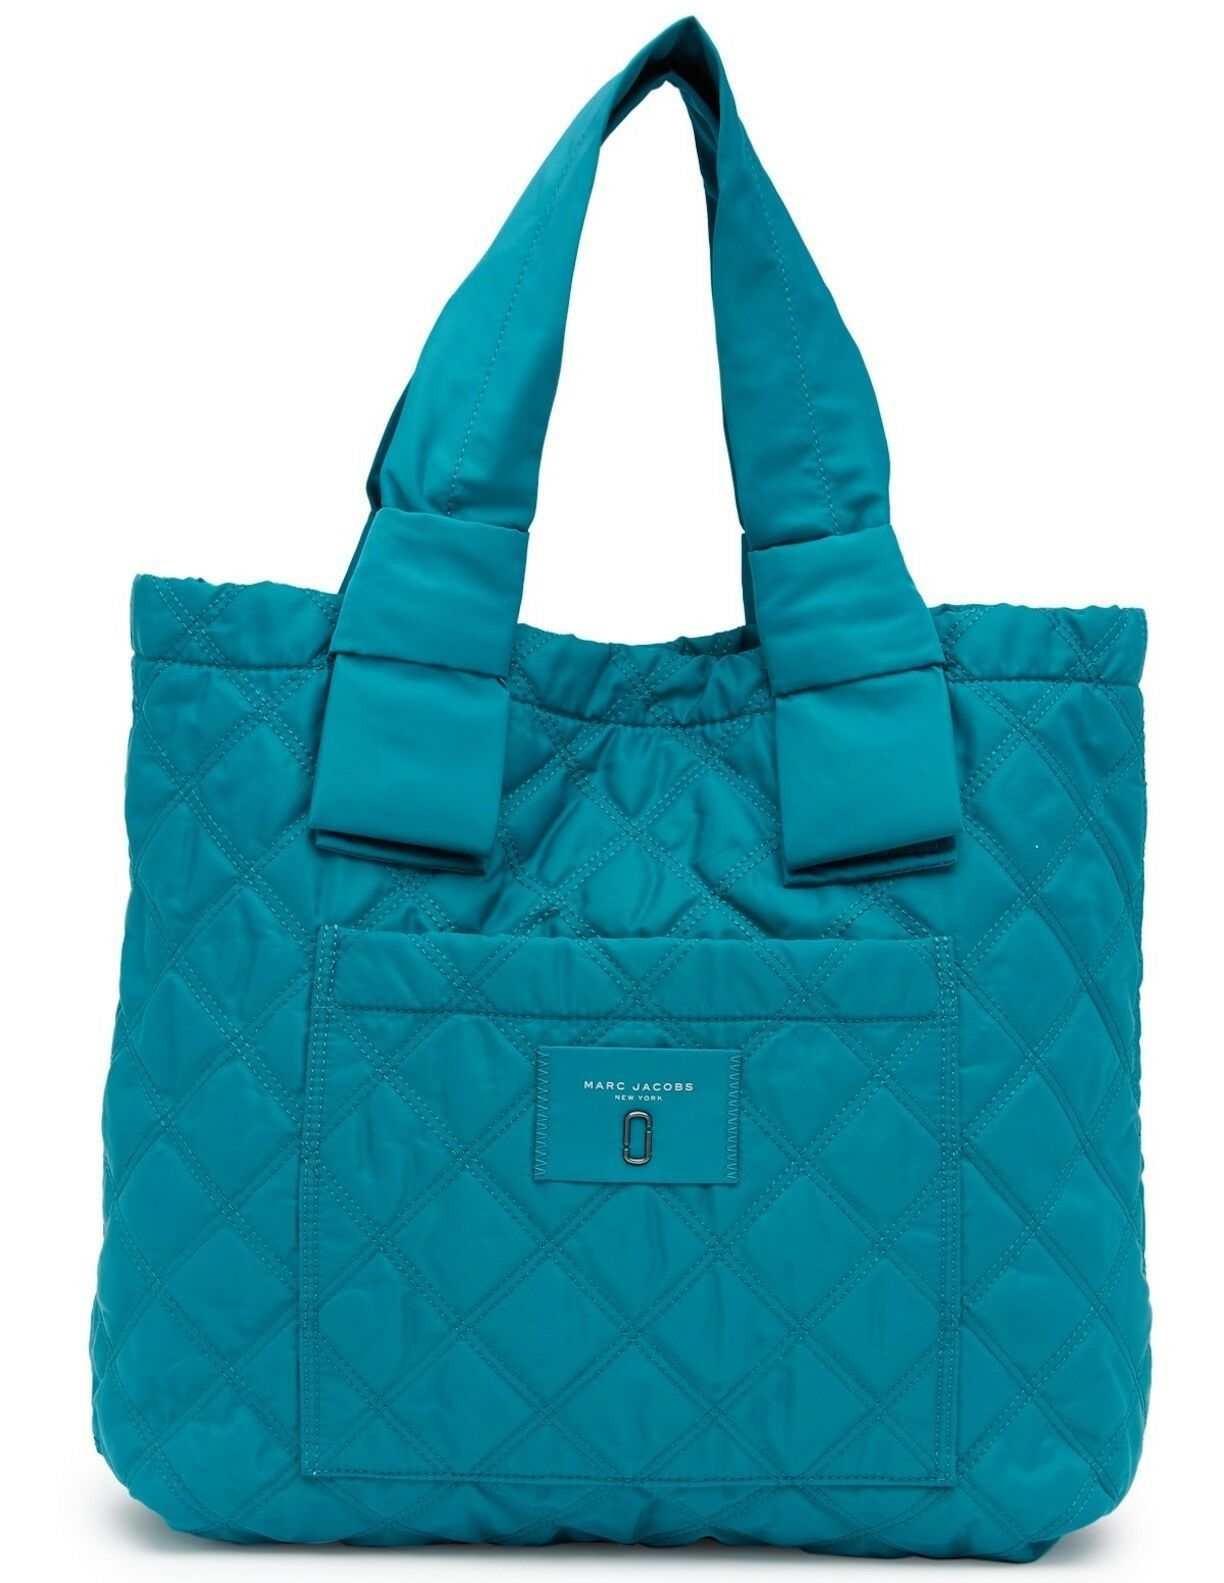 Primary image for Marc Jacobs Bag Diamond Quilted Nylon Large Knot Tote Peacock NEW